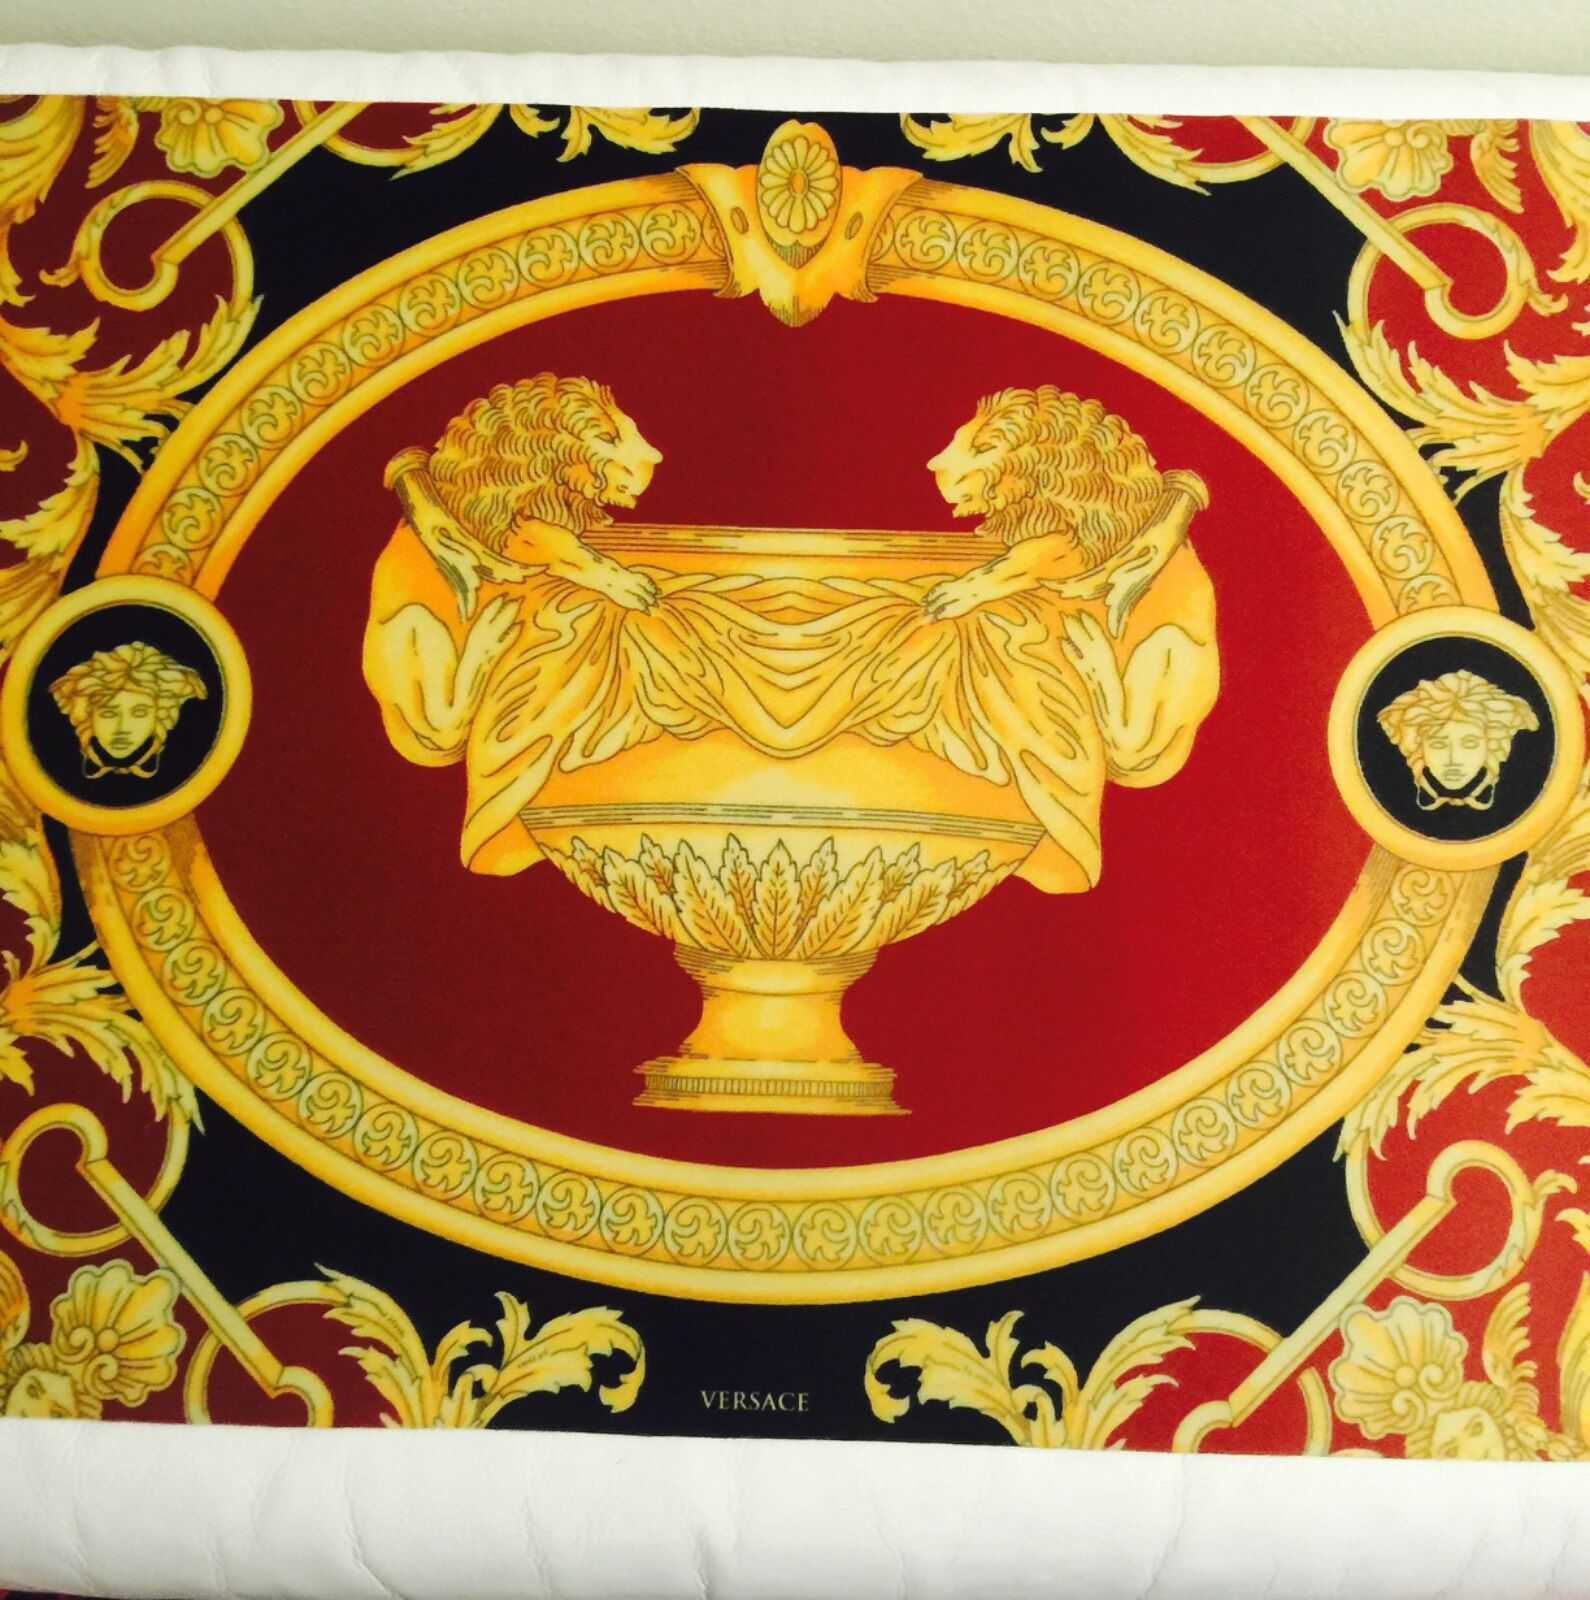 VERSACE MEDUSA plaque mat napperon table bar Mat BAROCCO Lion Urne Vase NEUF